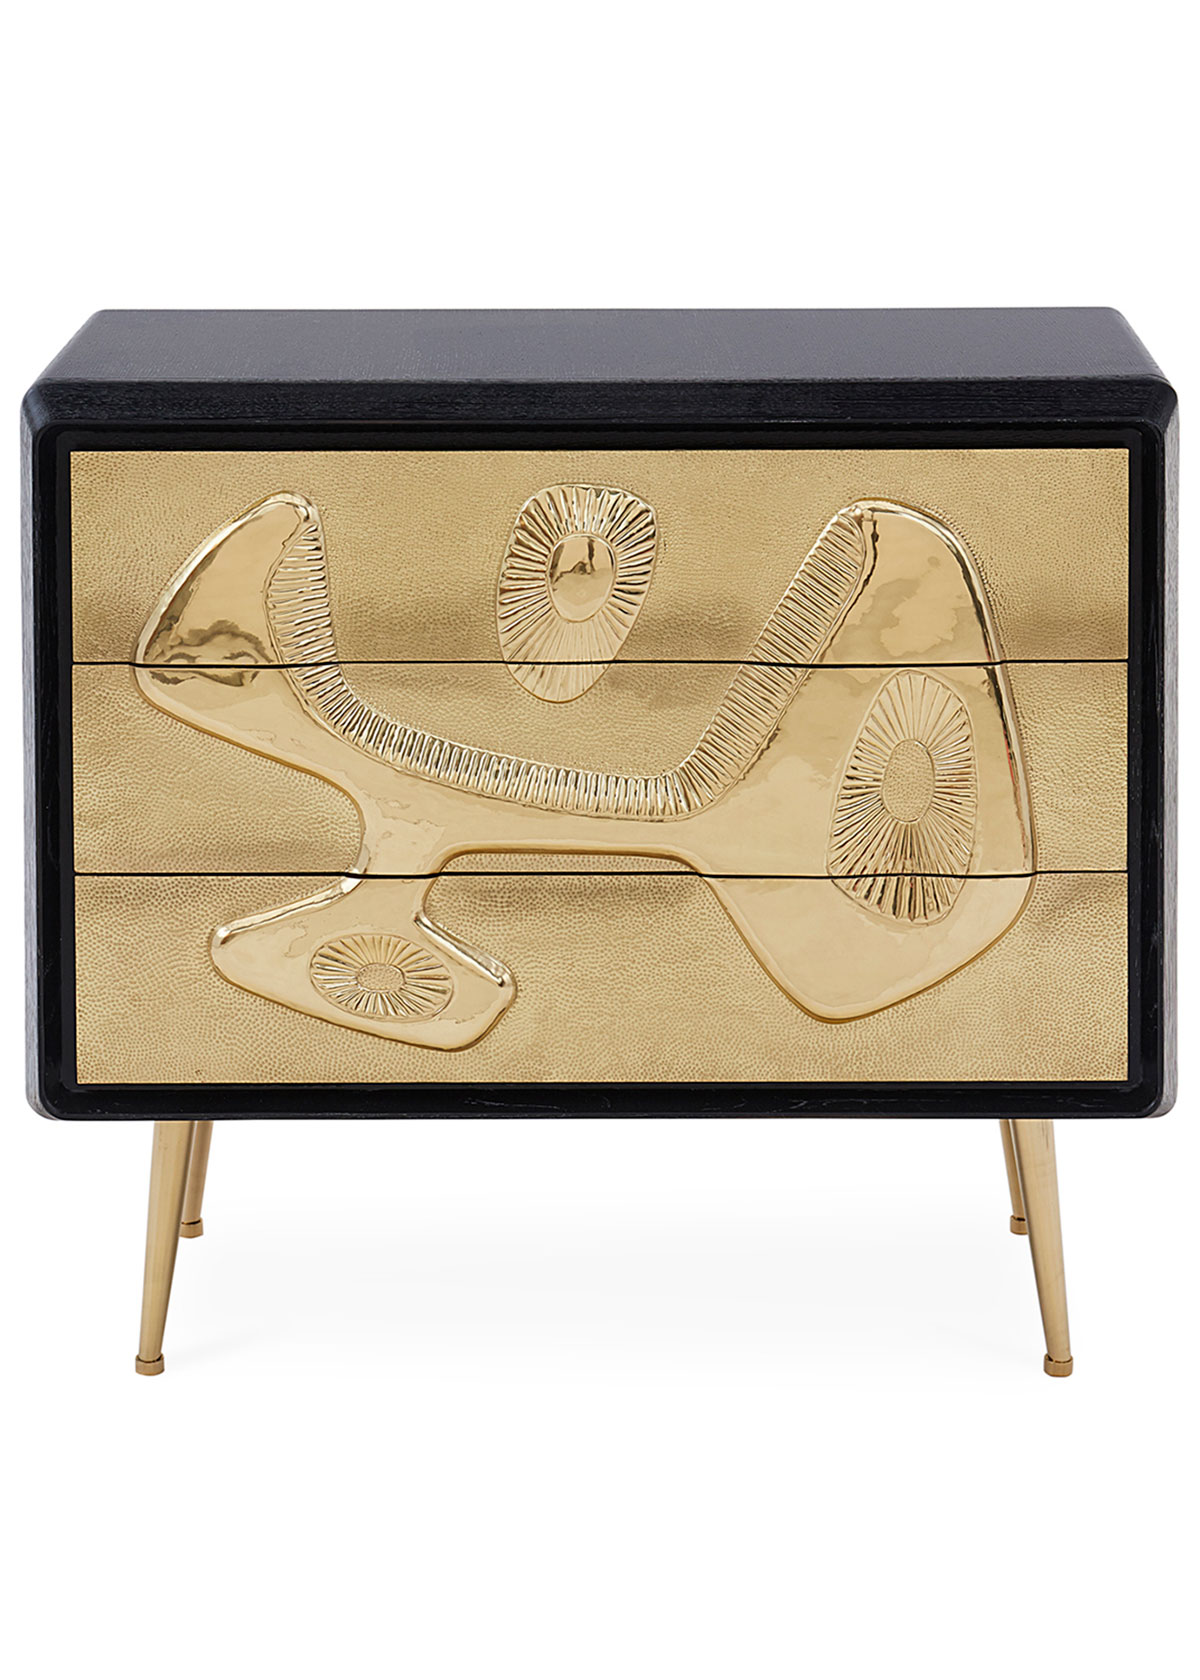 Jonathan Adler REFORM 3-DRAWER CHEST